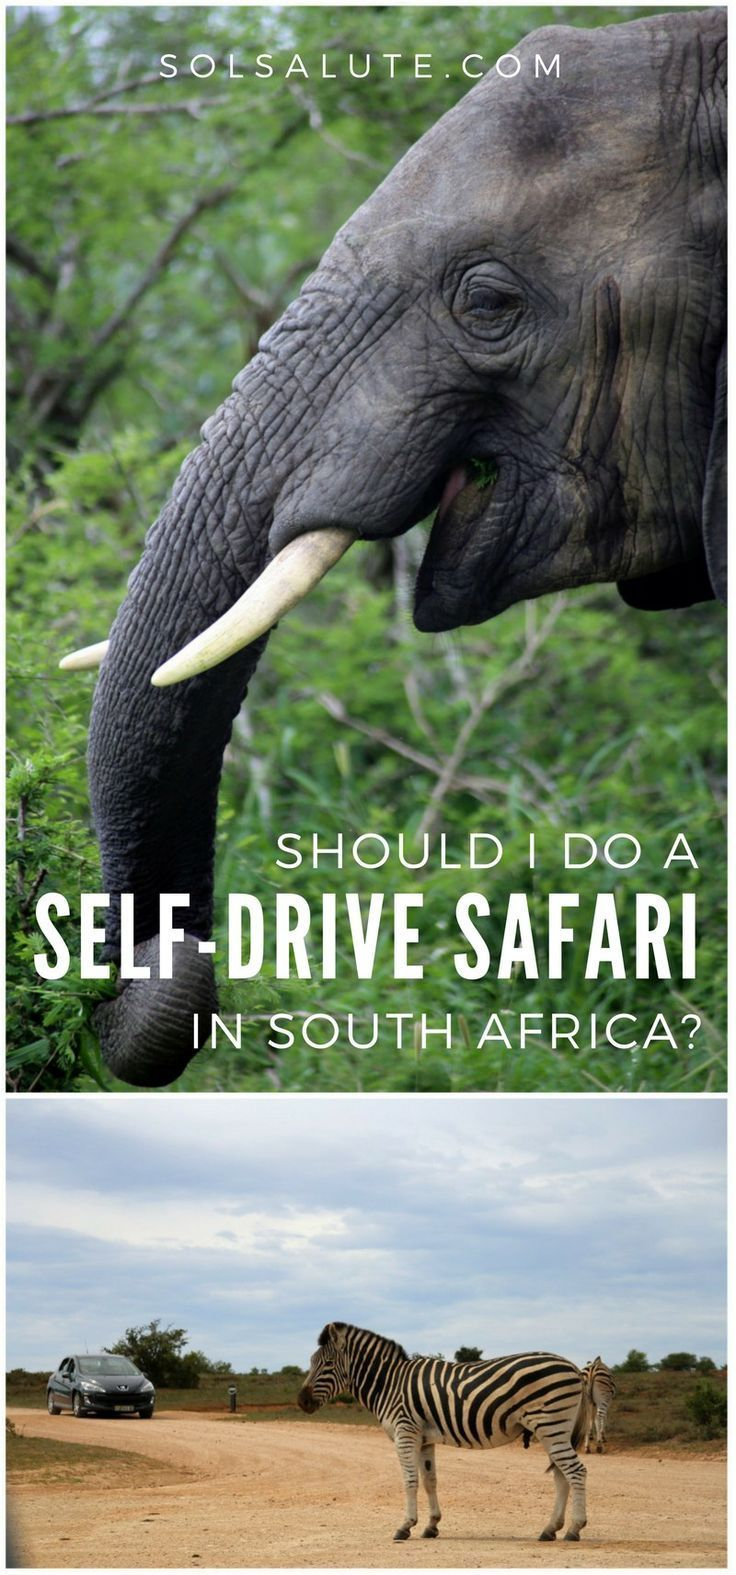 Tips and advice on doing a self-drive safari in South Africa